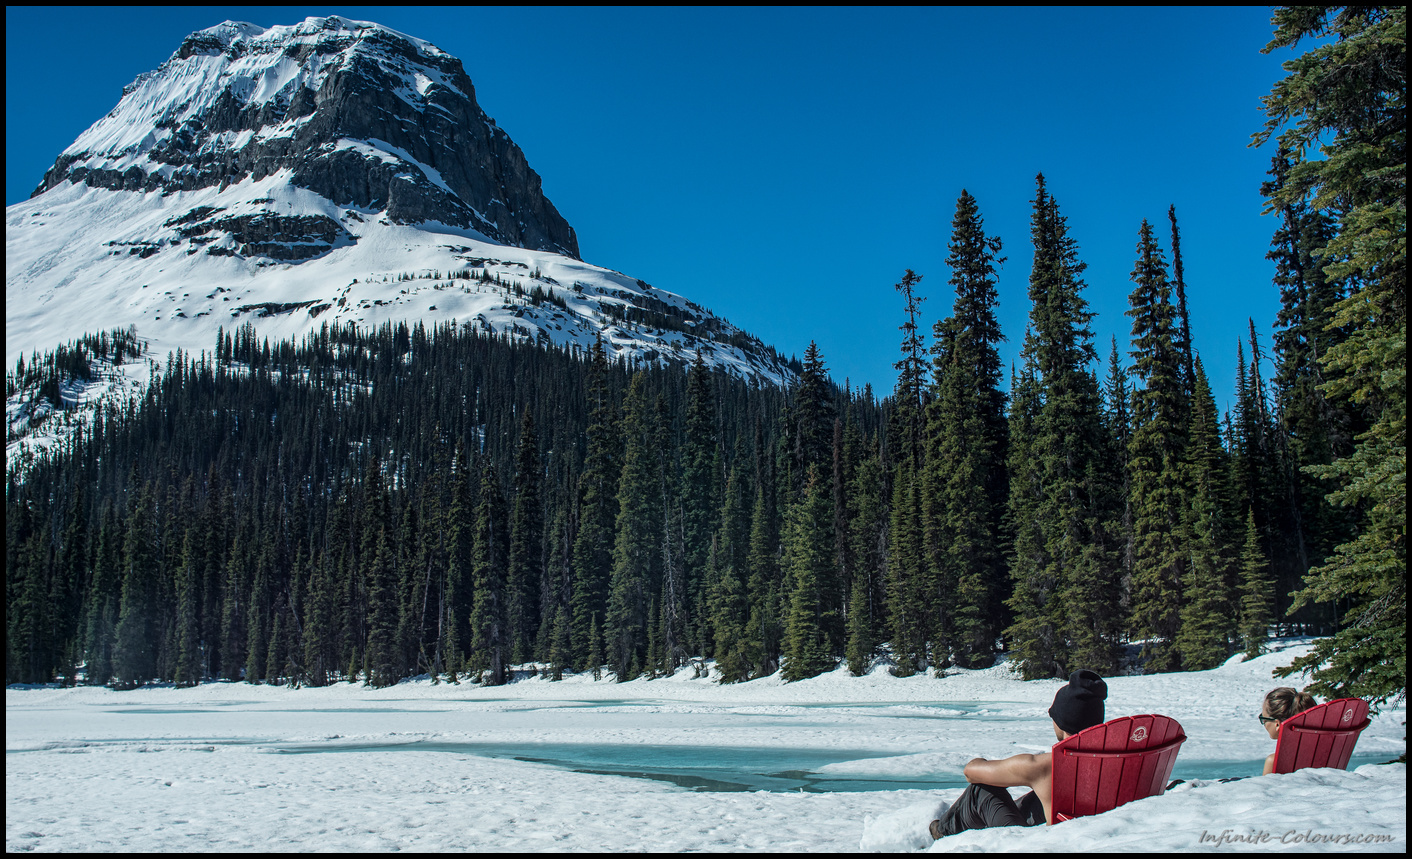 Red chair view, Yoho Lake Winter Camping